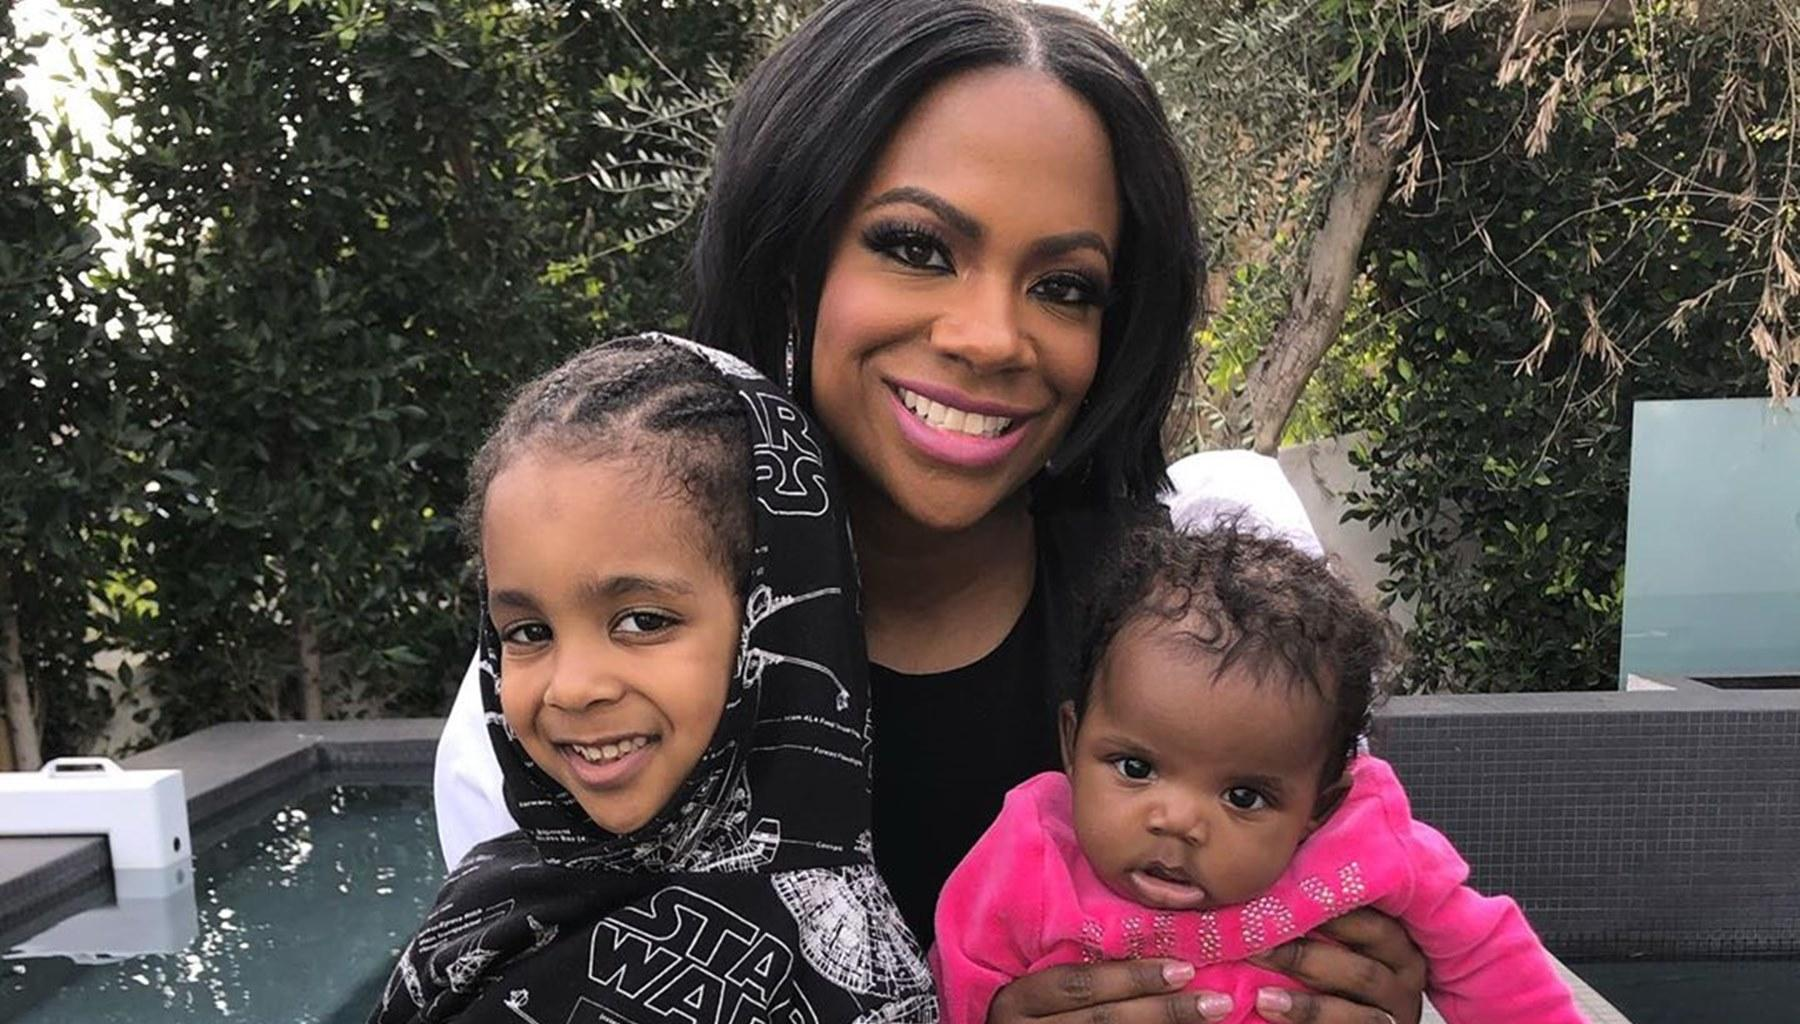 Kandi Burruss Cannot Wait To See What The Future Holds For Her Kids - See Their Sweet Photo Together